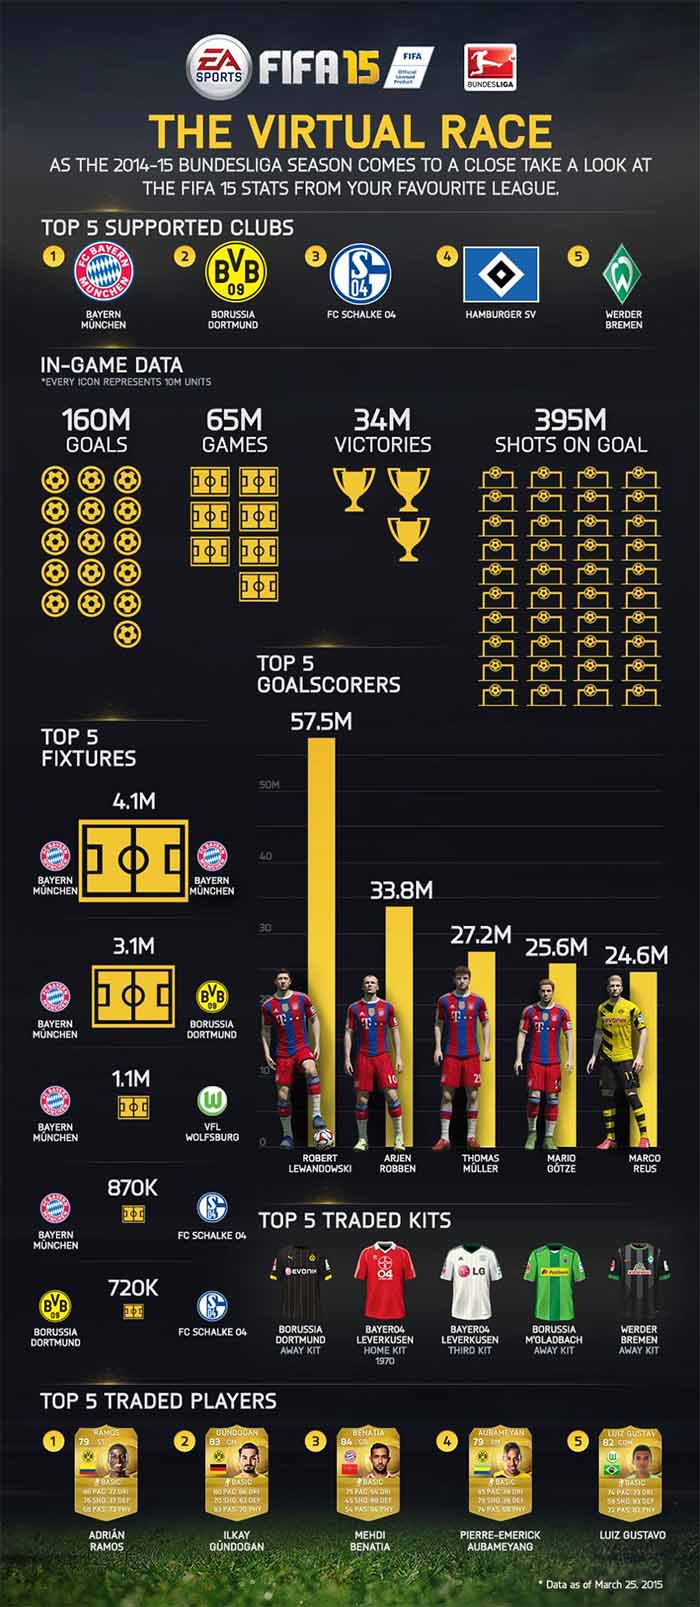 FIFA 15 Most Popular Leagues Analysis